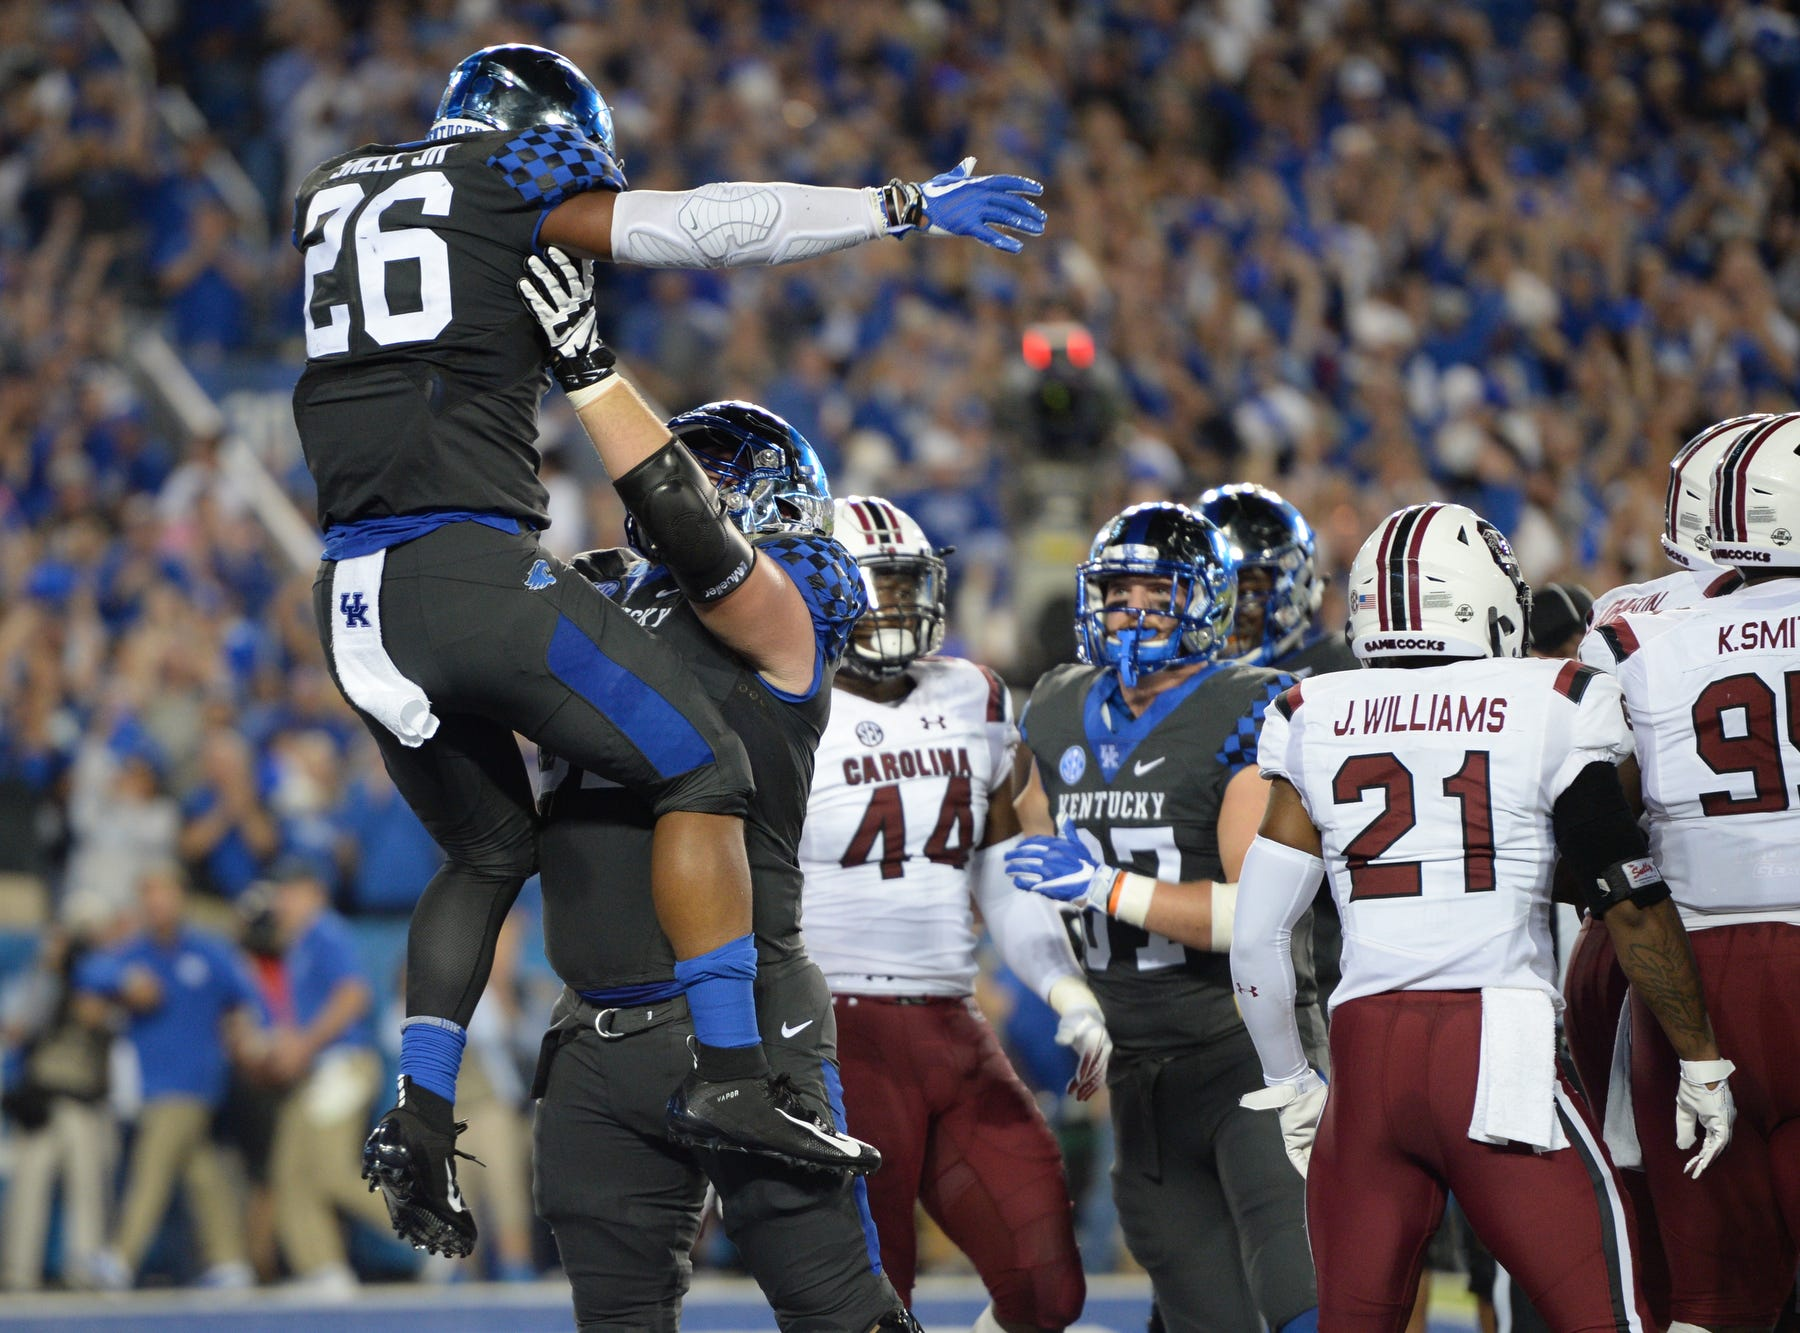 UK RB Benny Snell Jr. celebrates a touchdown during the University of Kentucky football game against South Carolina at Kroger Field in Lexington, Kentucky on Saturday, September 29, 2018.